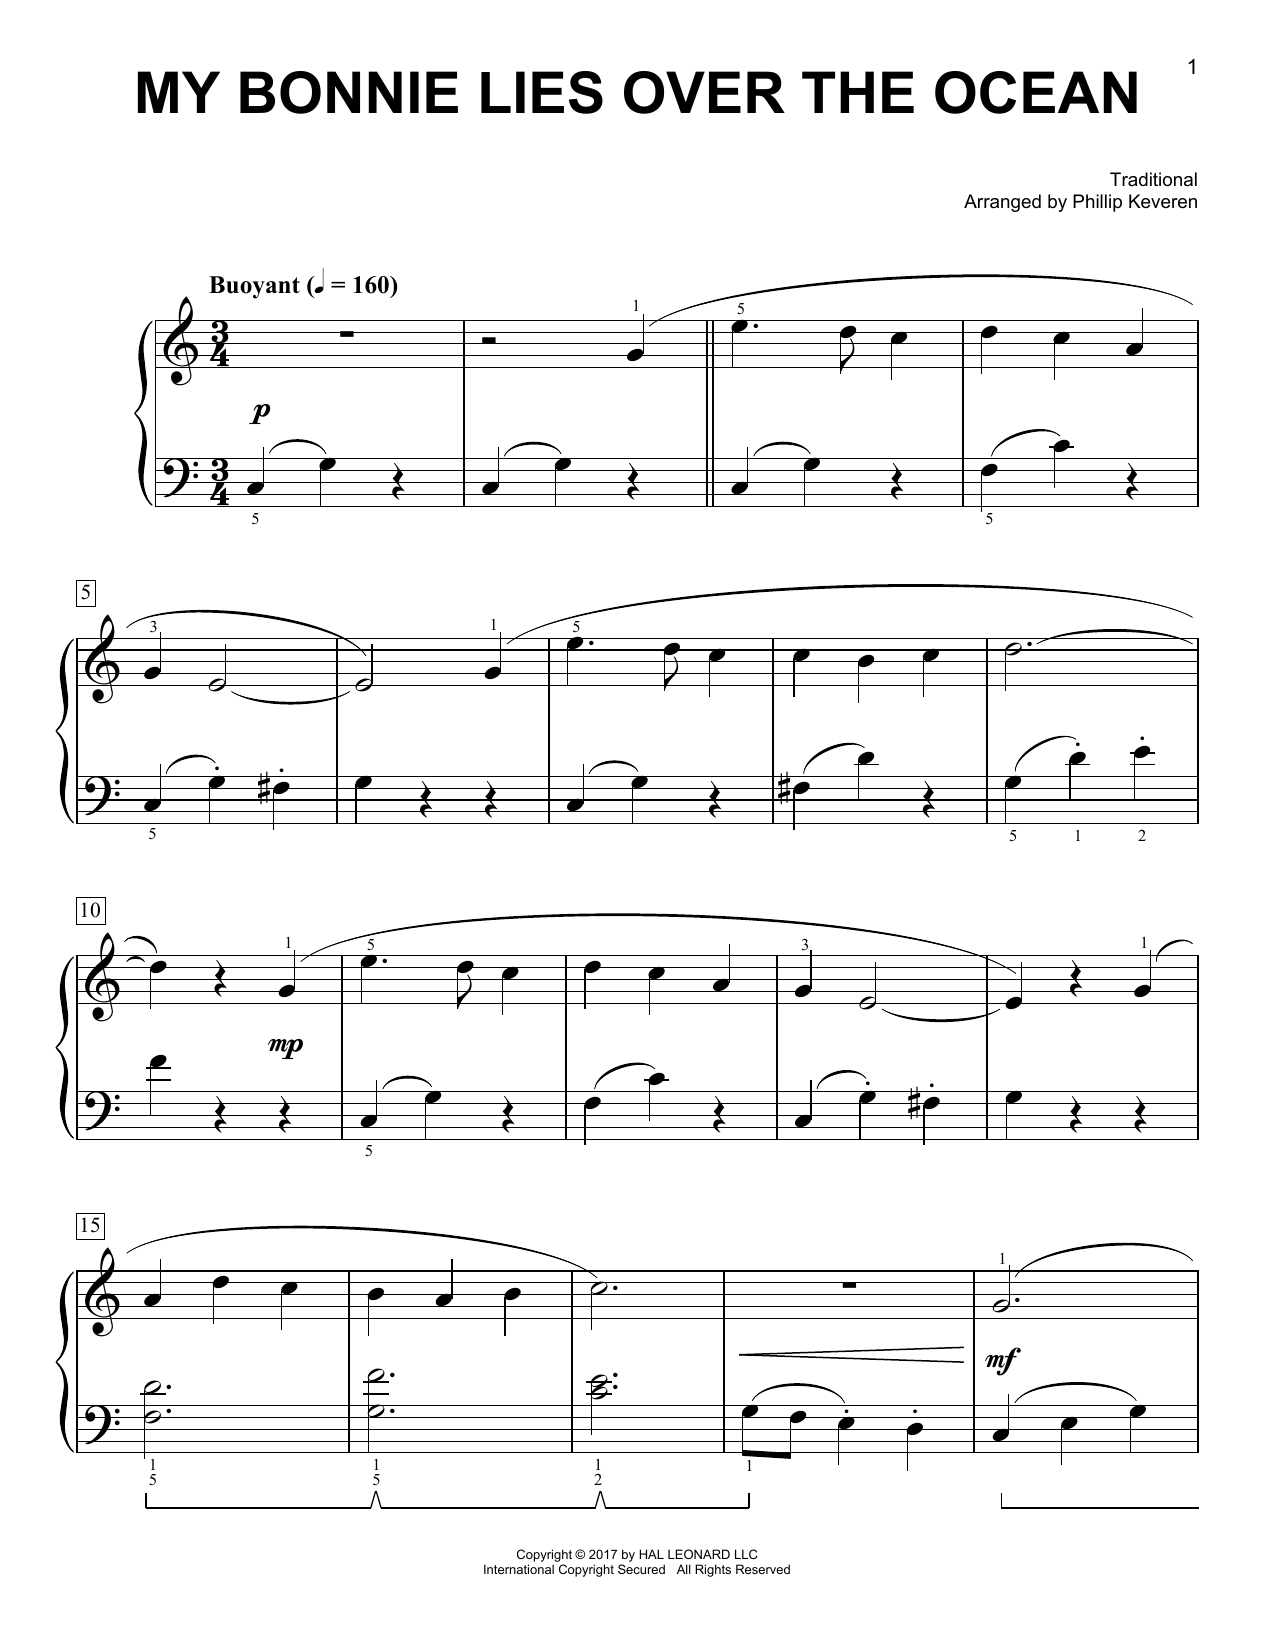 Traditional My Bonnie Lies Over The Ocean [Classical version] (arr. Phillip Keveren) sheet music notes and chords. Download Printable PDF.